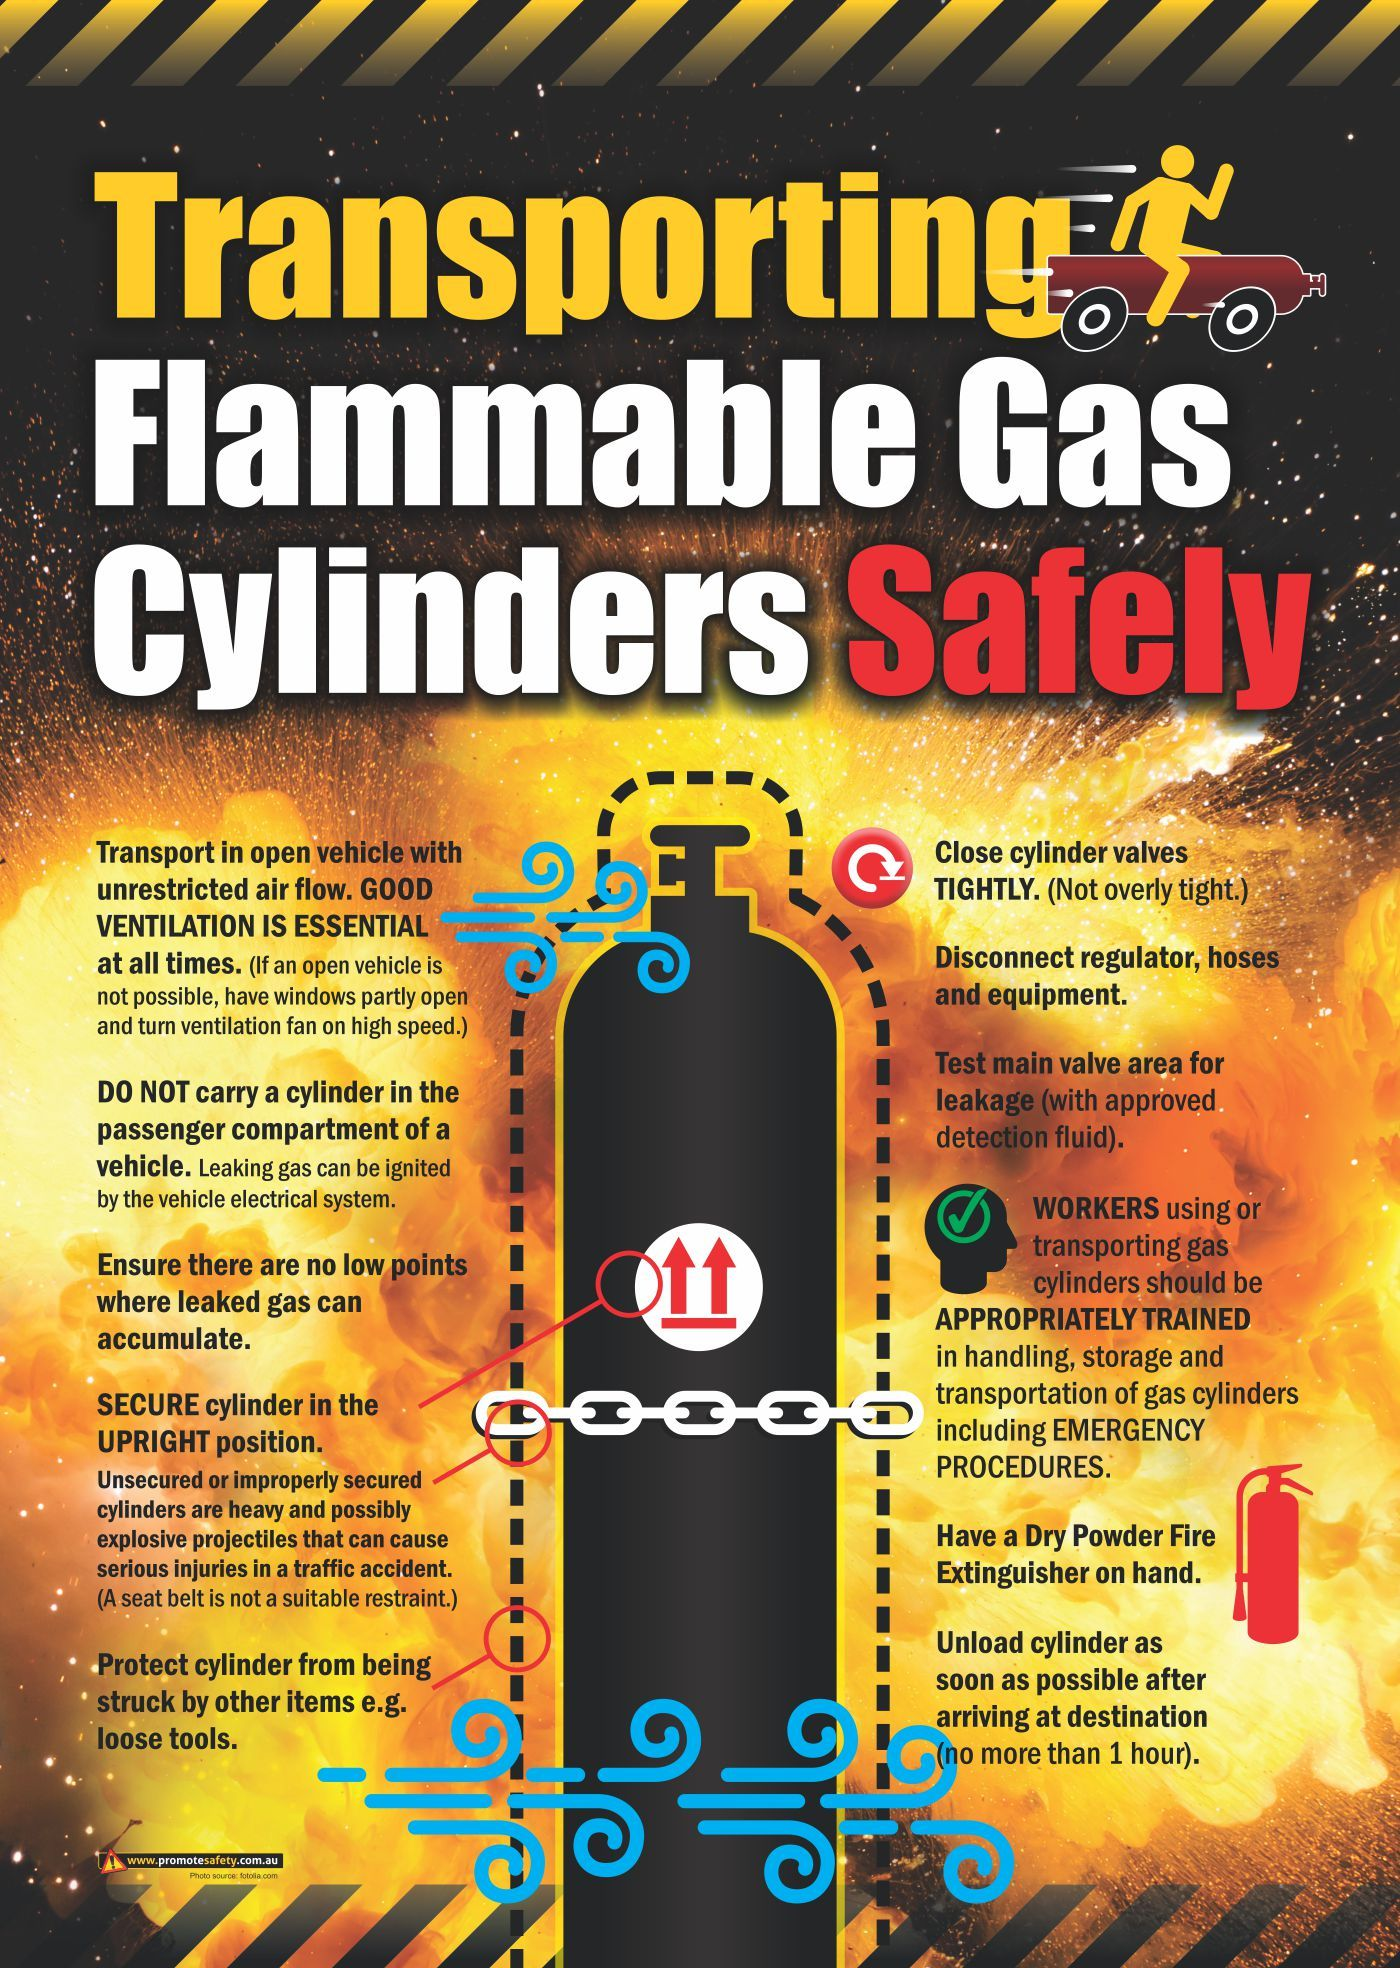 With the latest fatality from a flammable gas cylinder